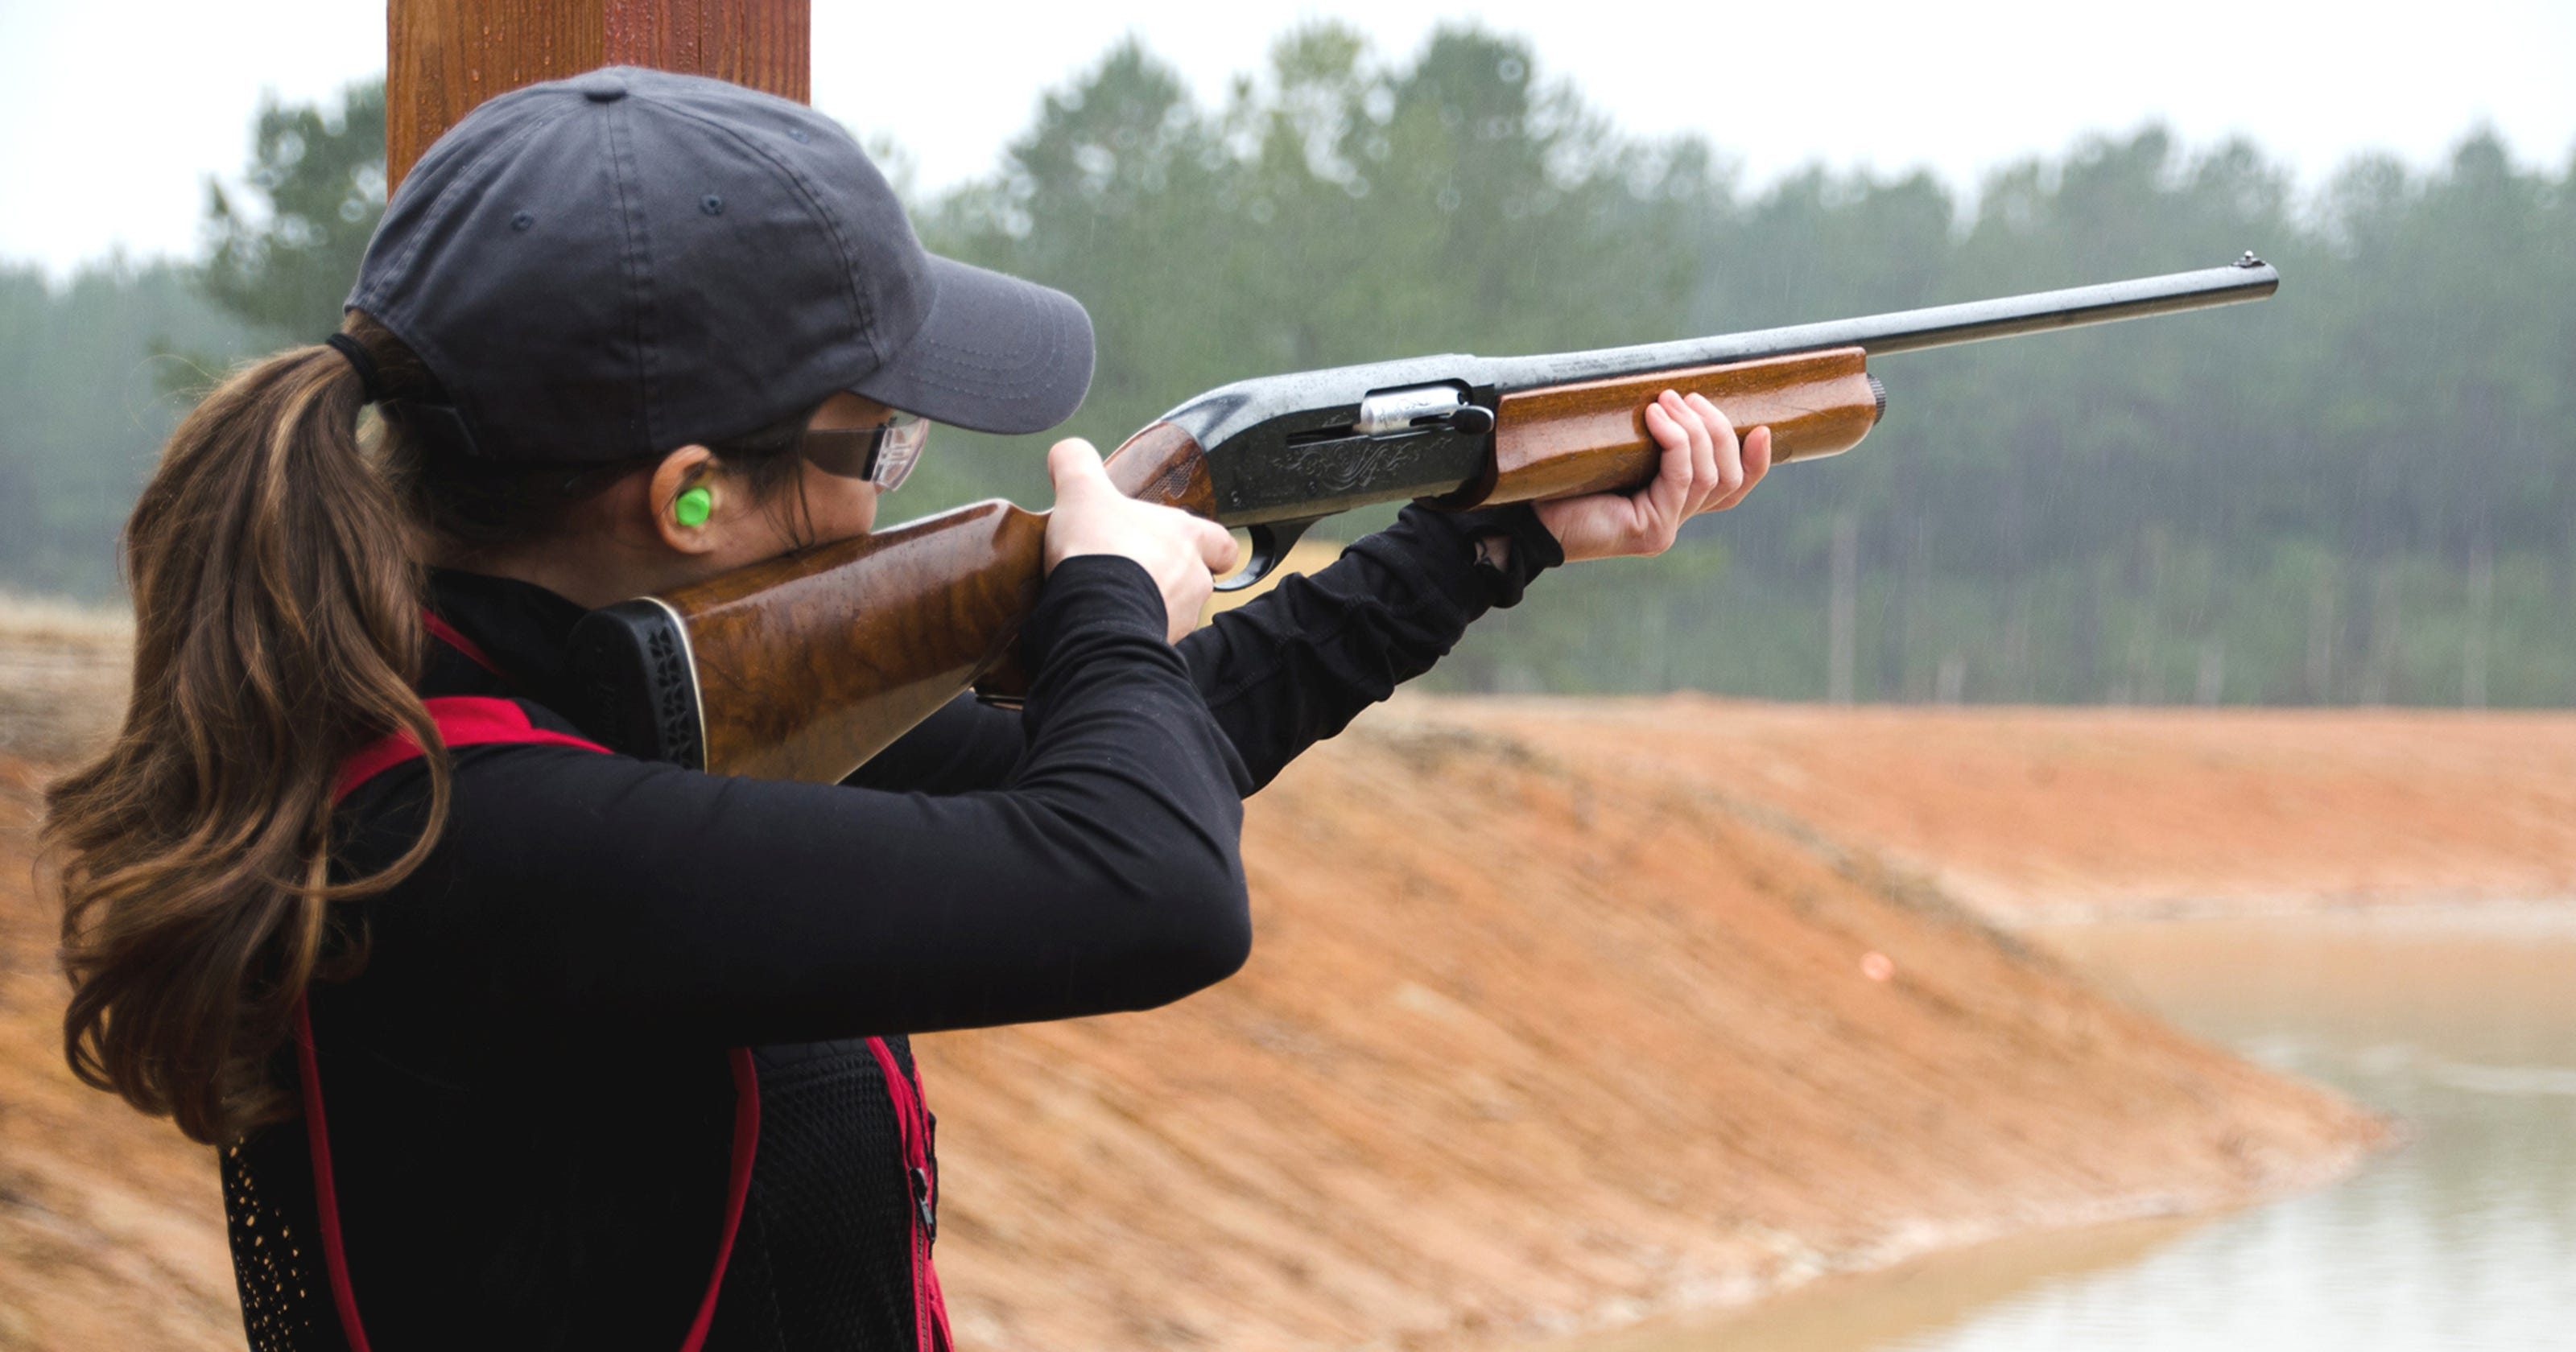 New shooting range coming to north Mississippi